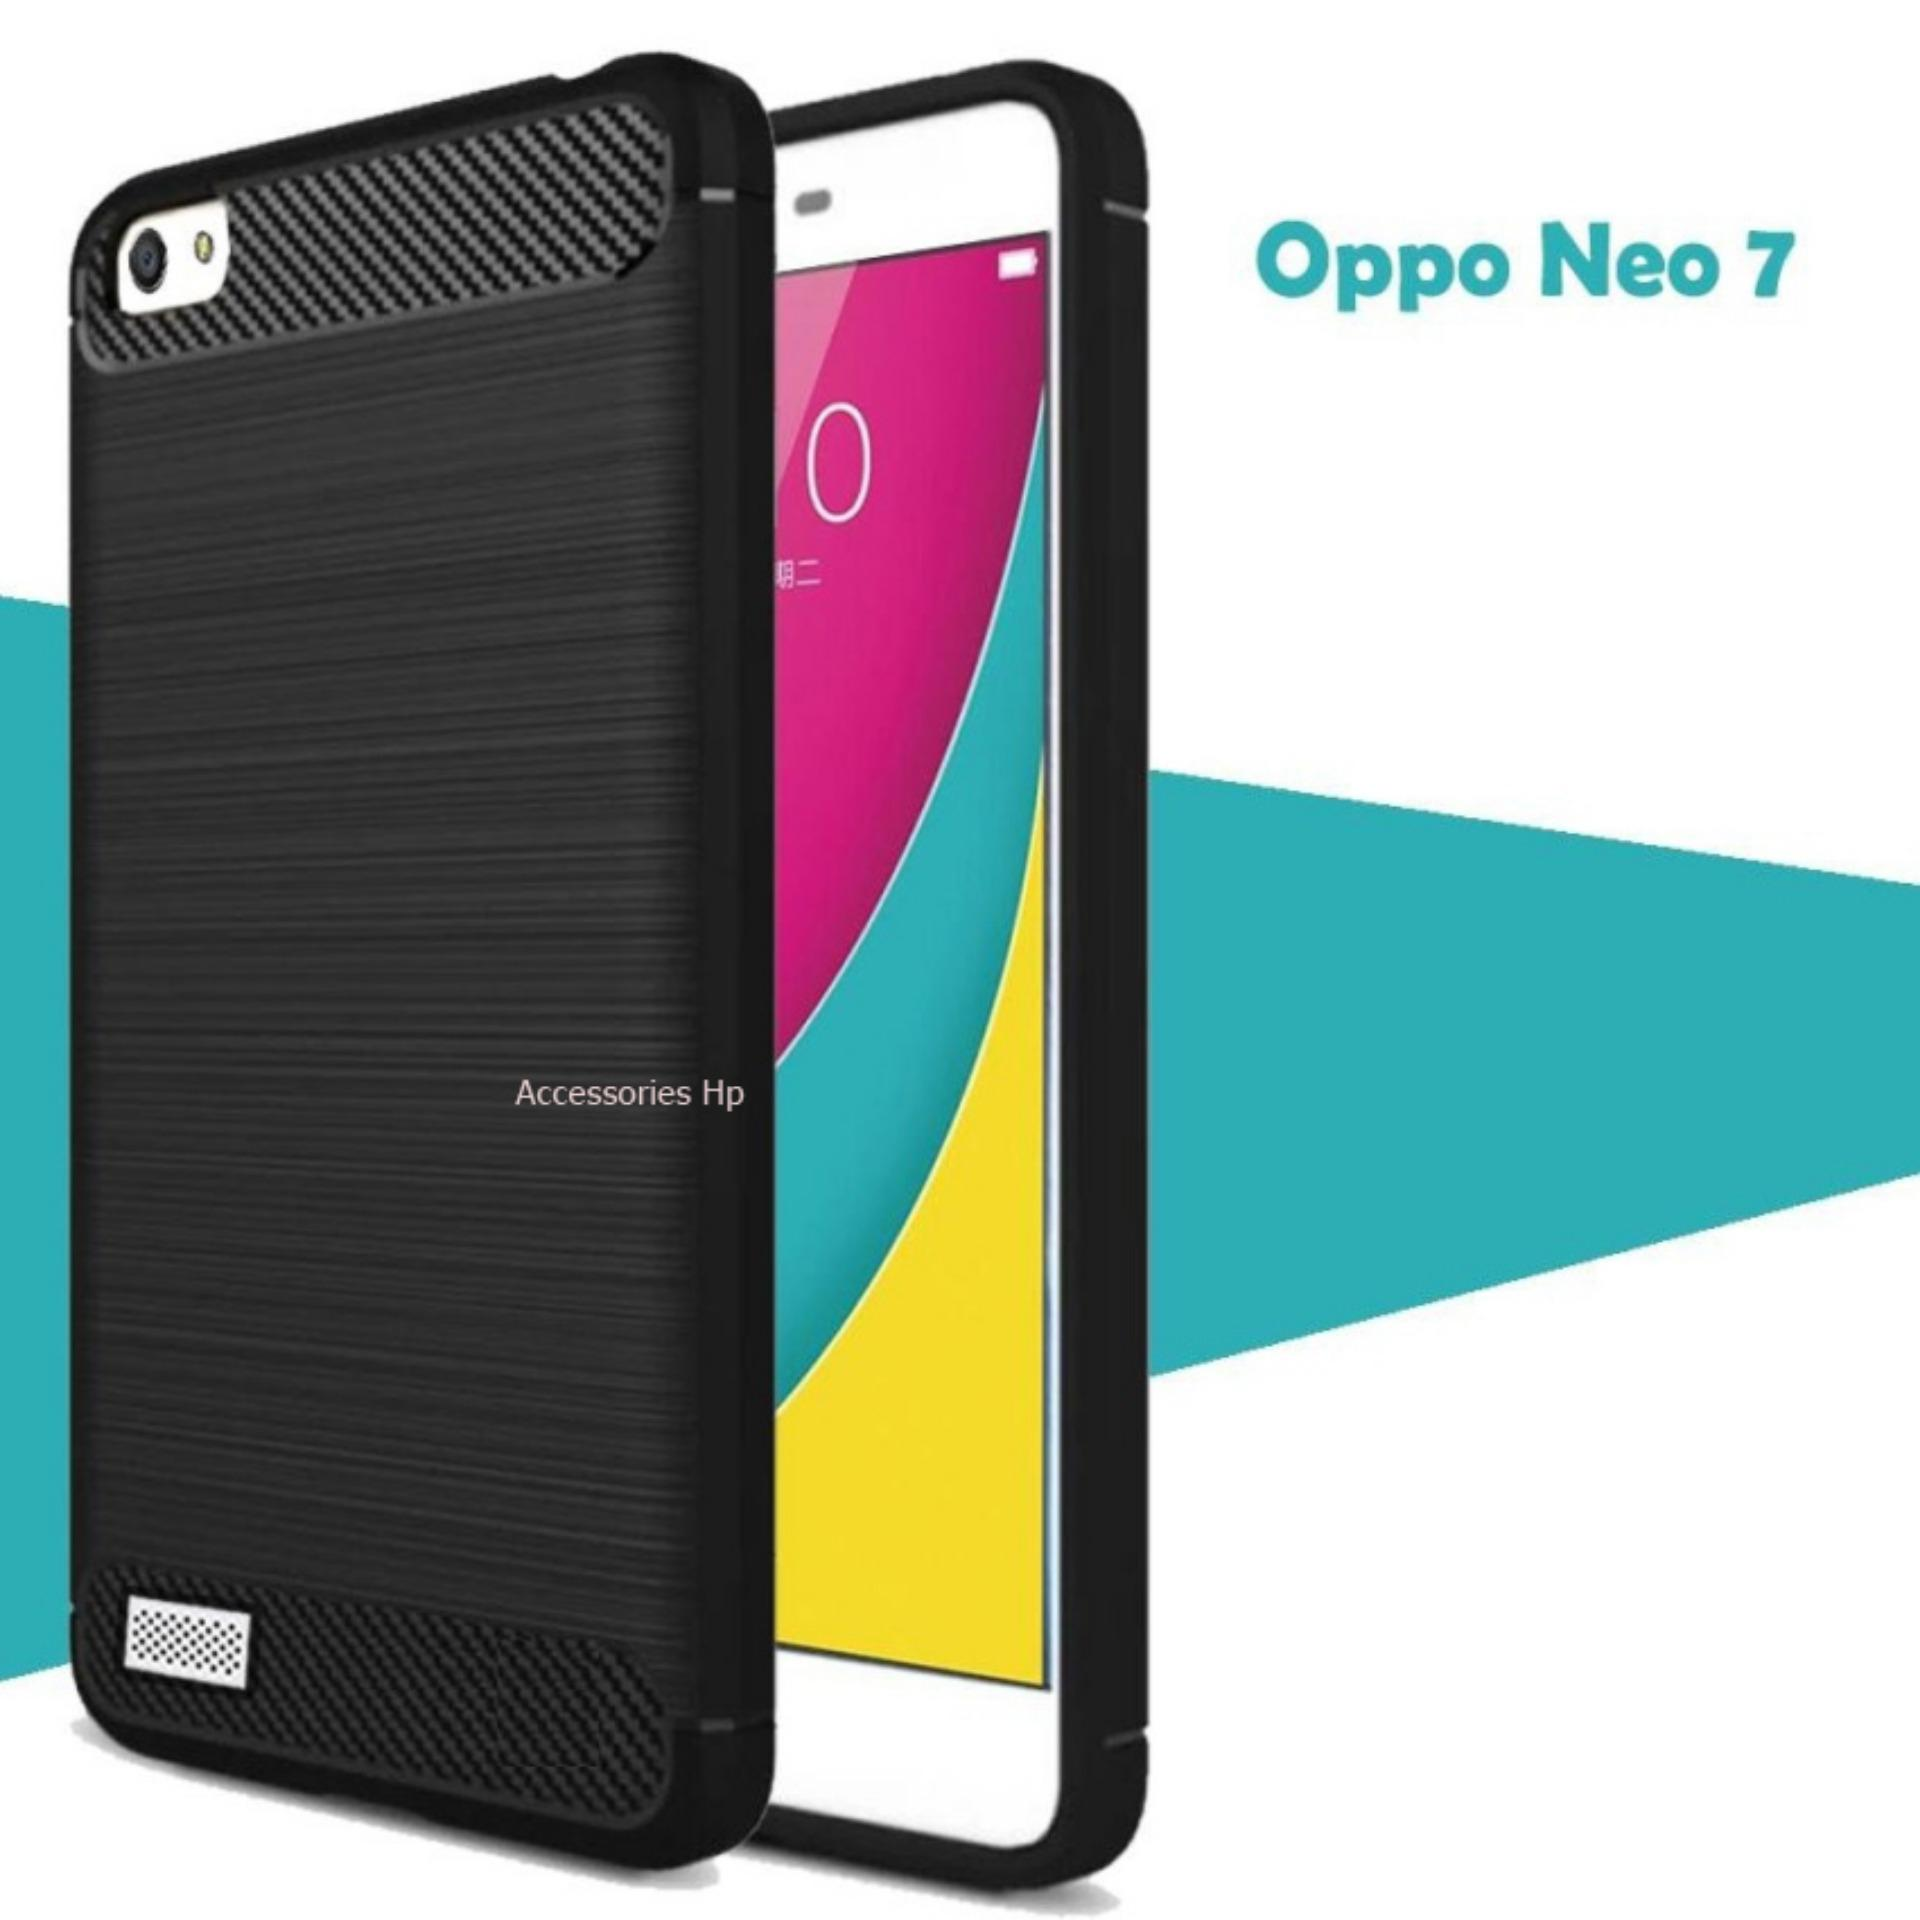 Accessories HP Premium Quality Carbon Shockproof Hybrid Case for OPPO A33 / Neo 7 - Black